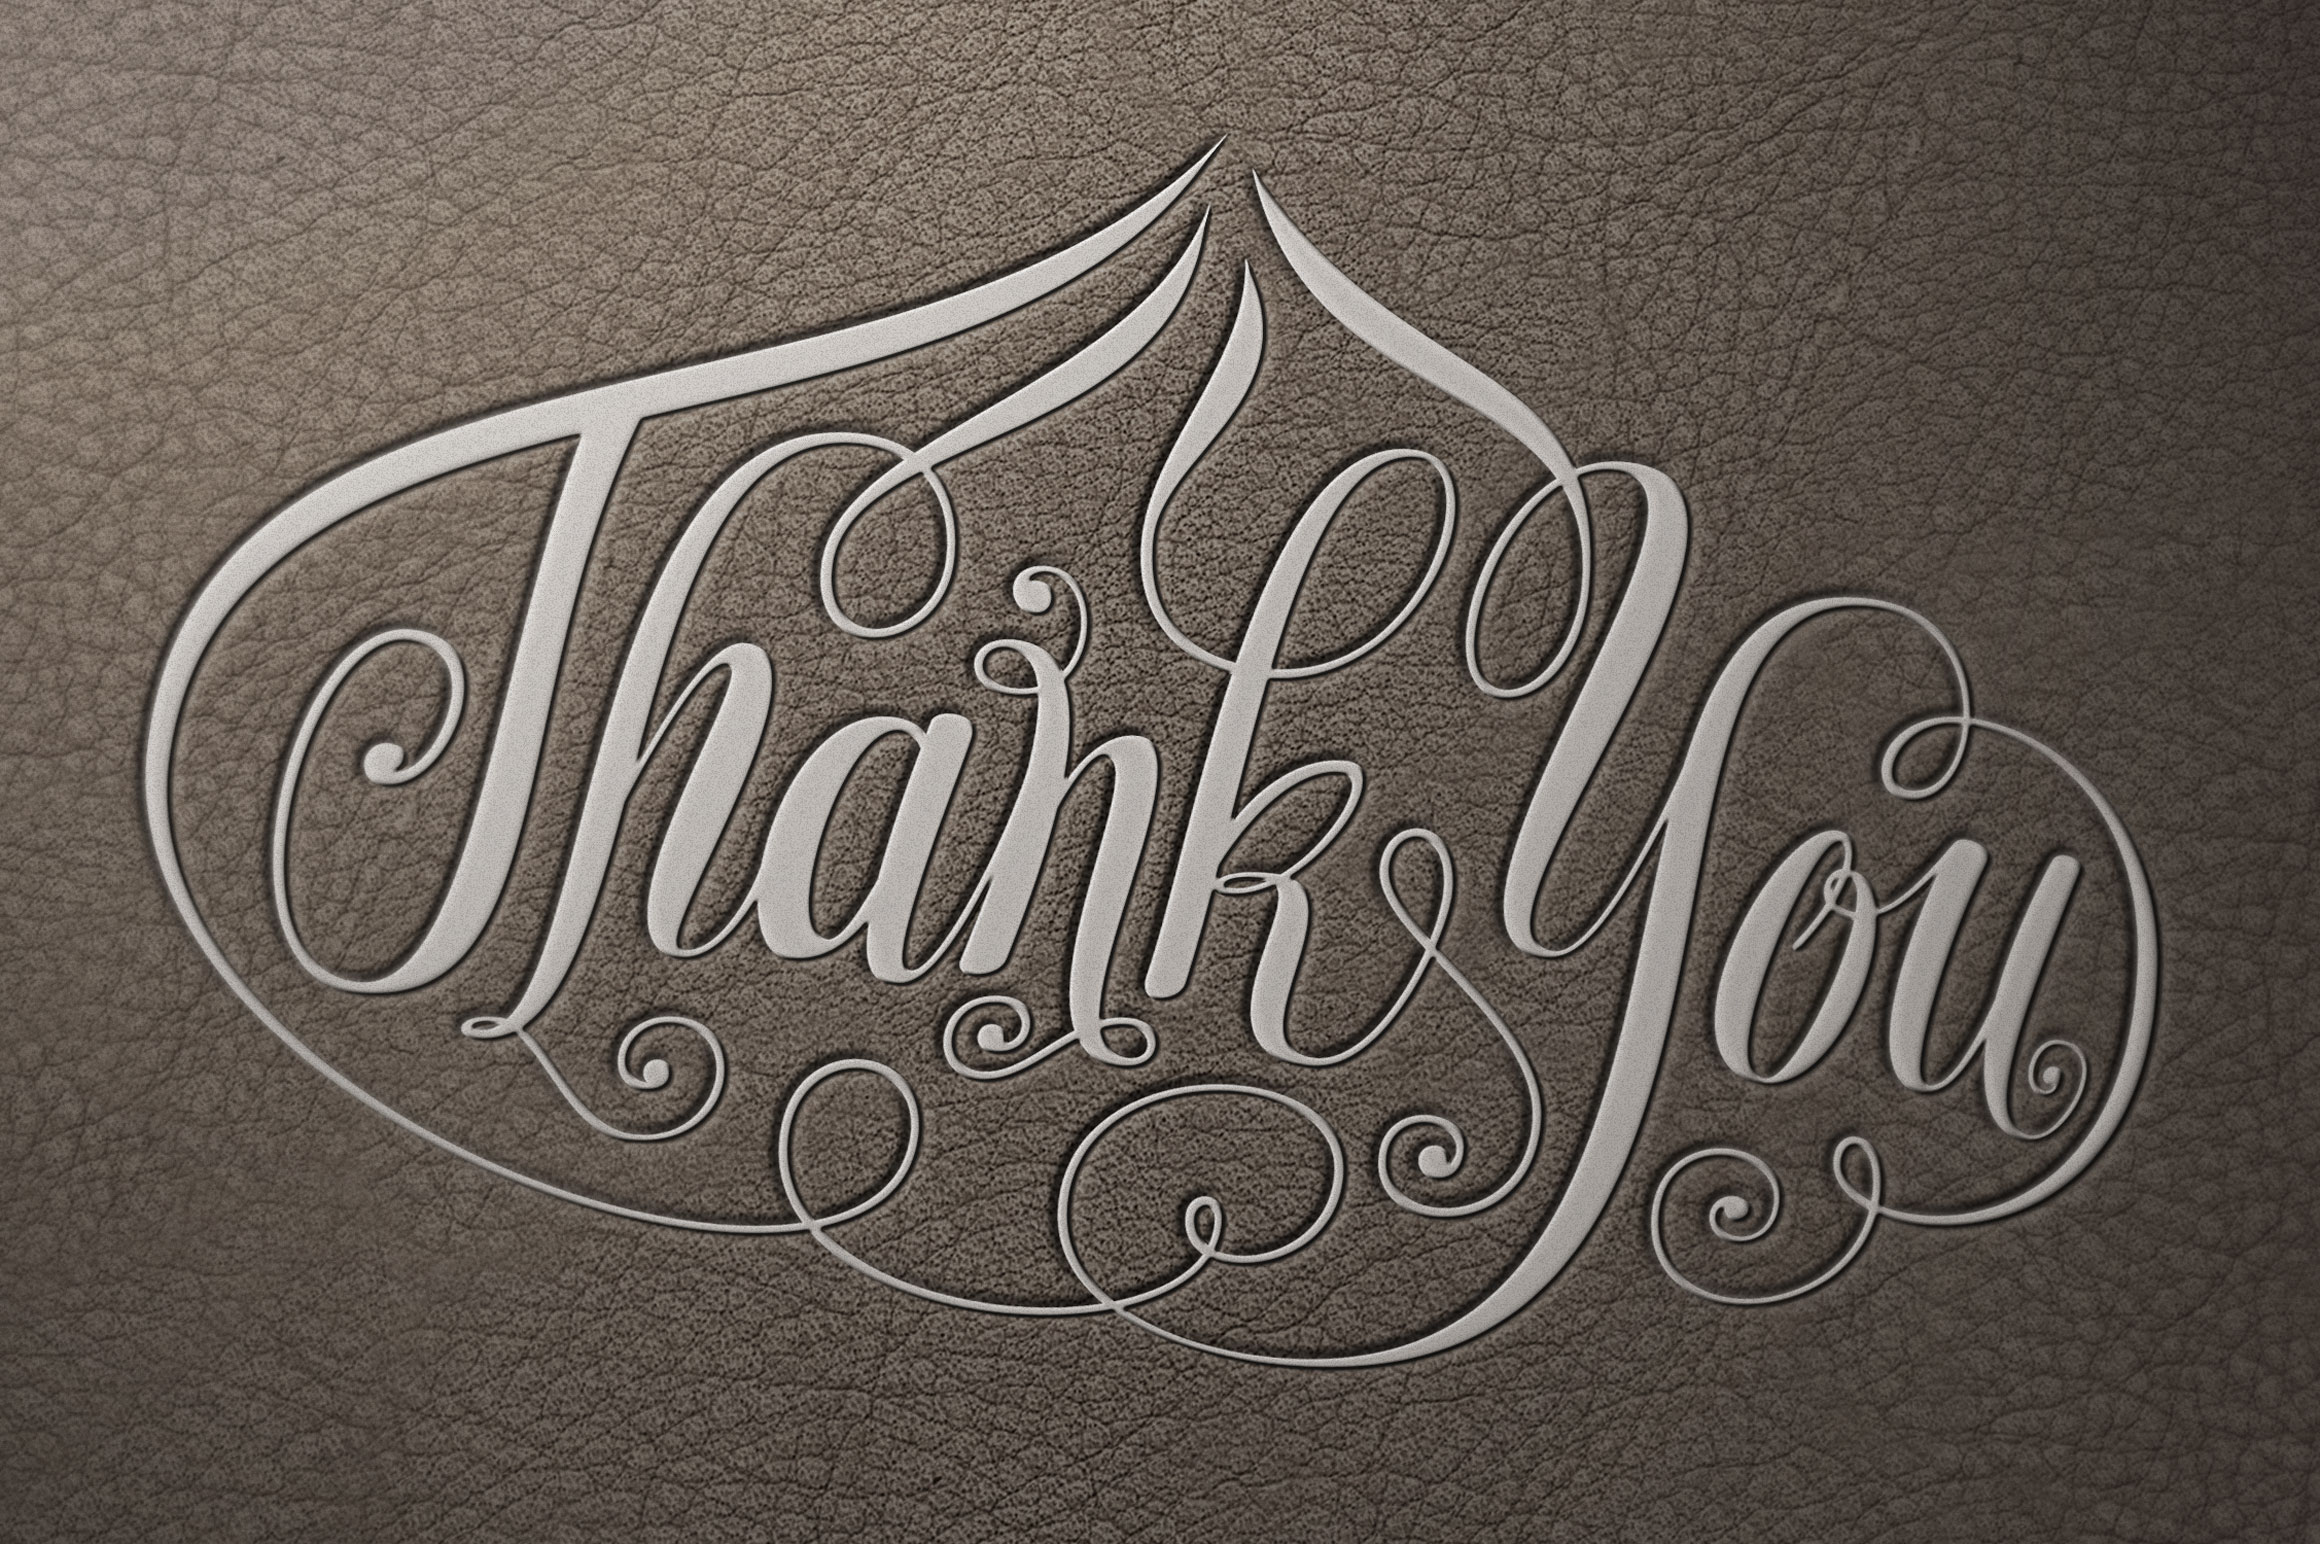 Thank-You-Onion-Shape-Lettering SVG example image 1